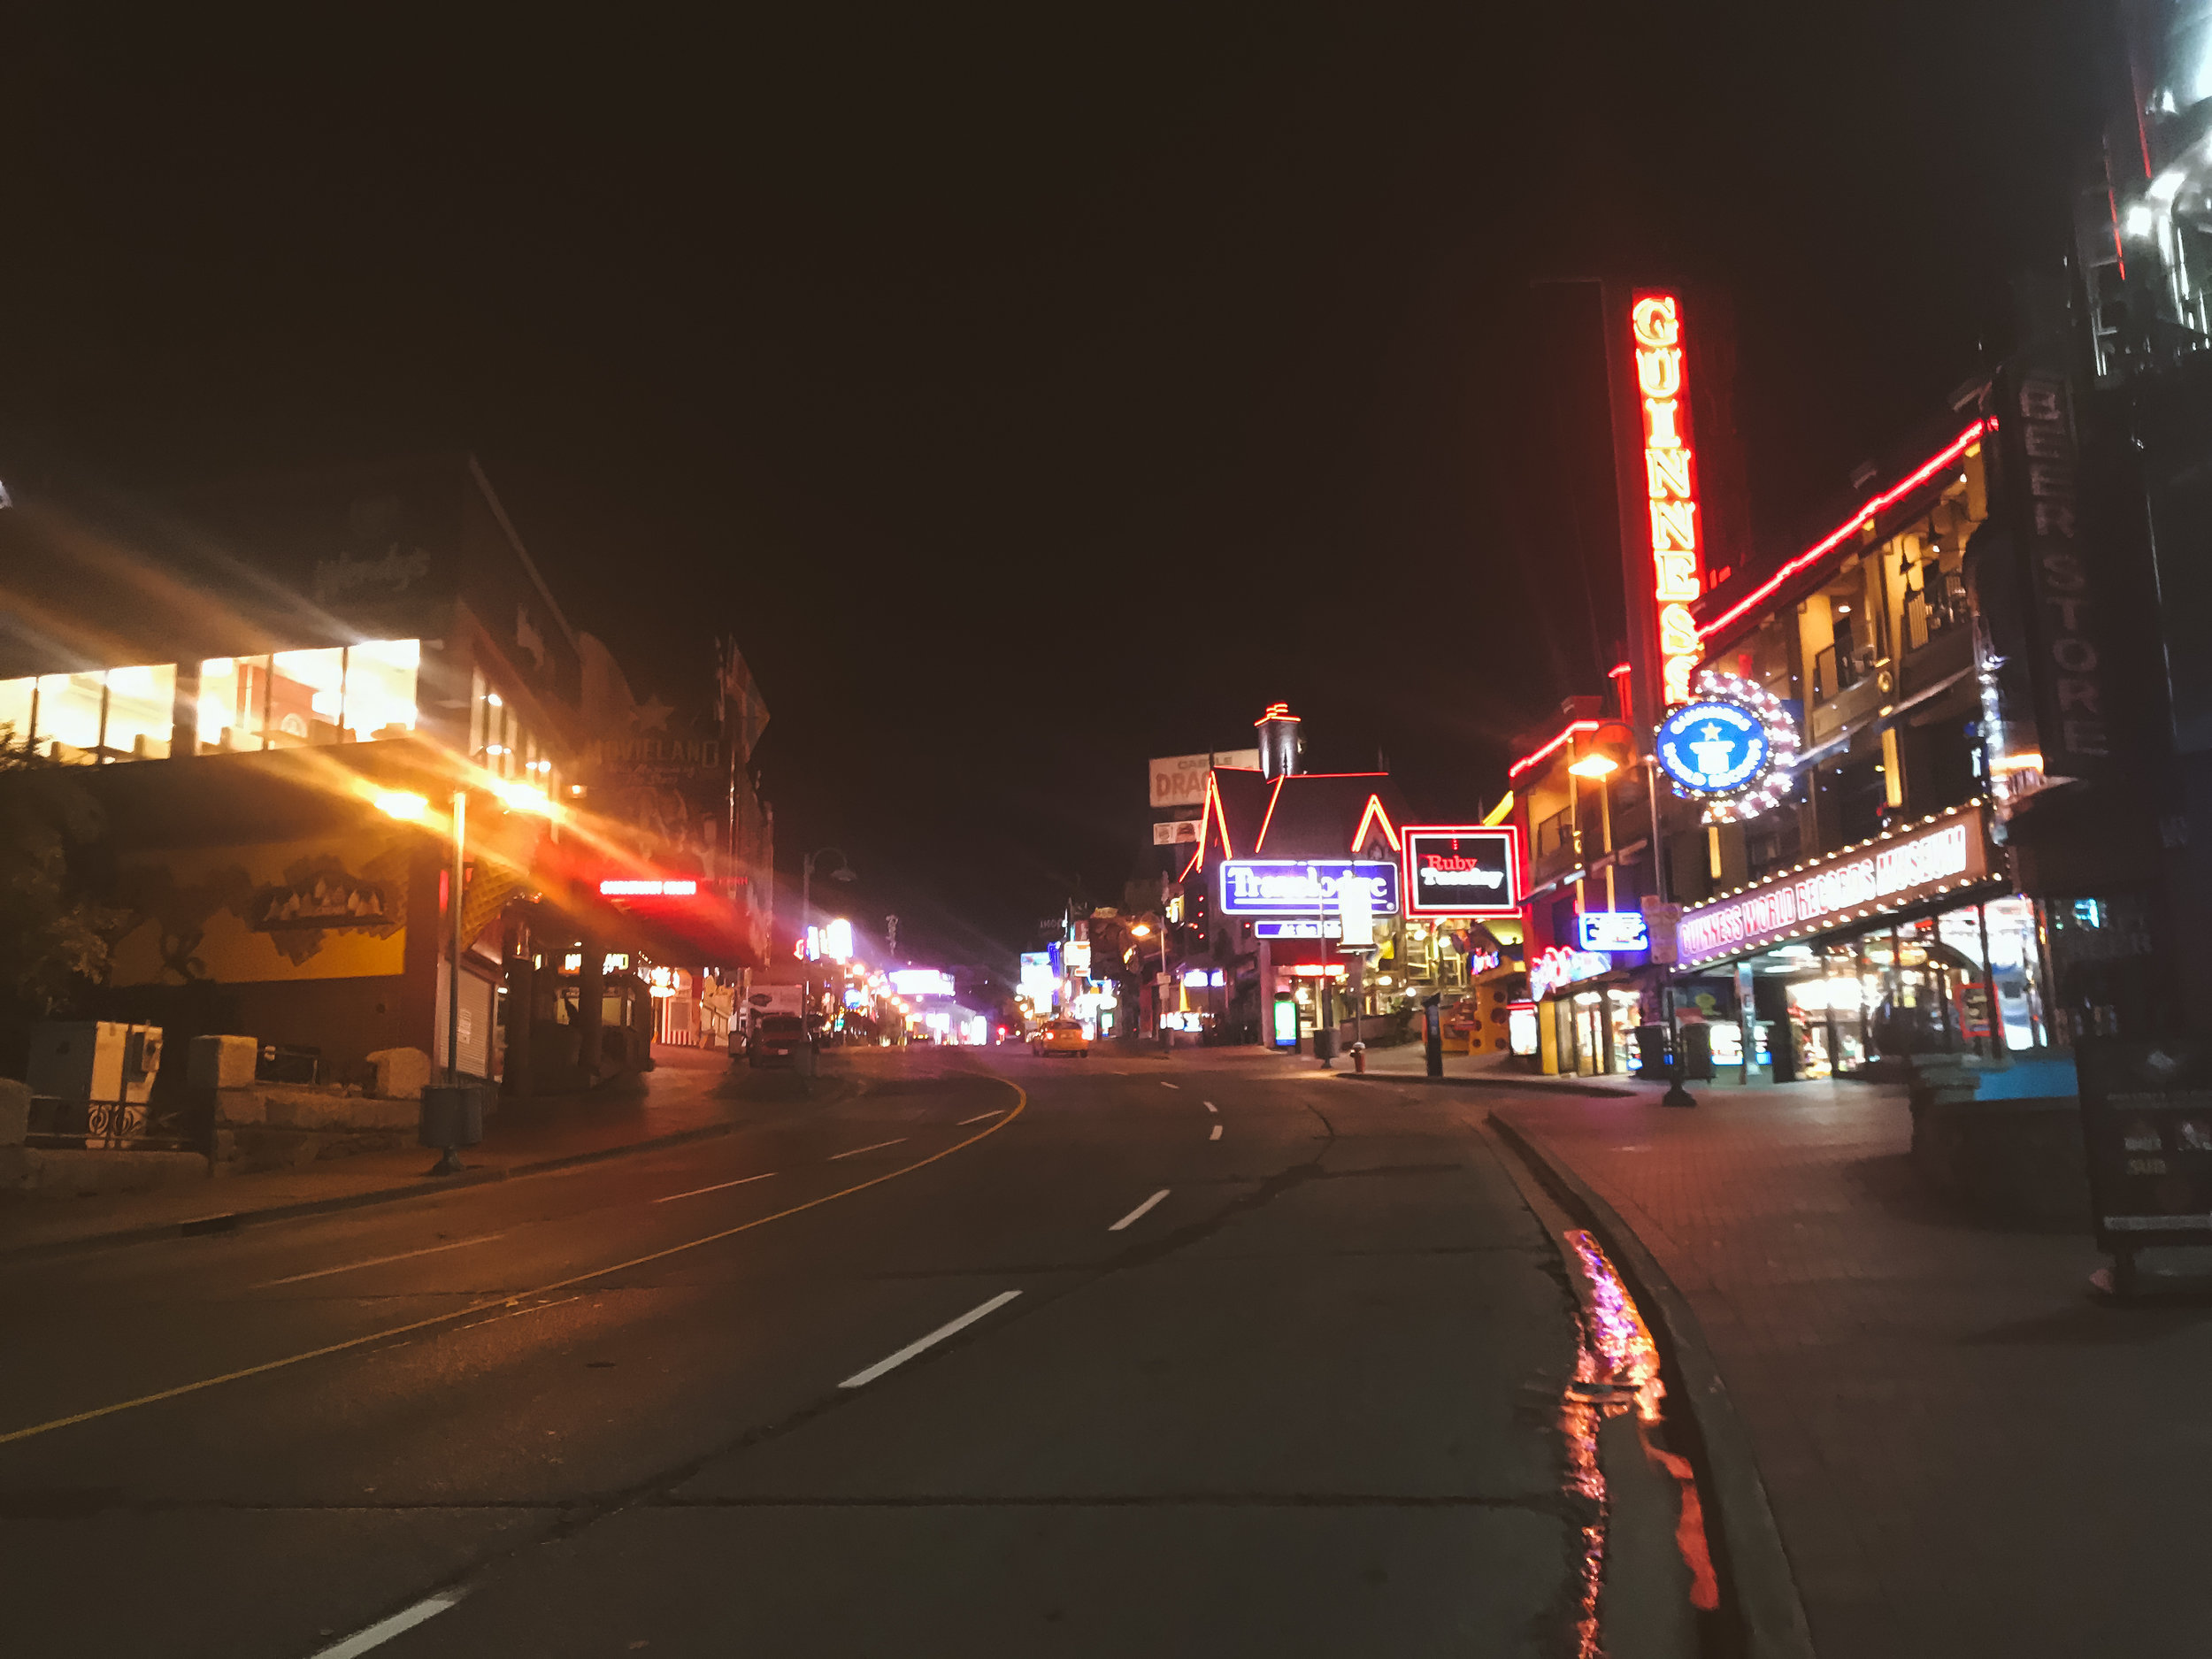 Niagara Falls Streets are extra neon and extra empty at night